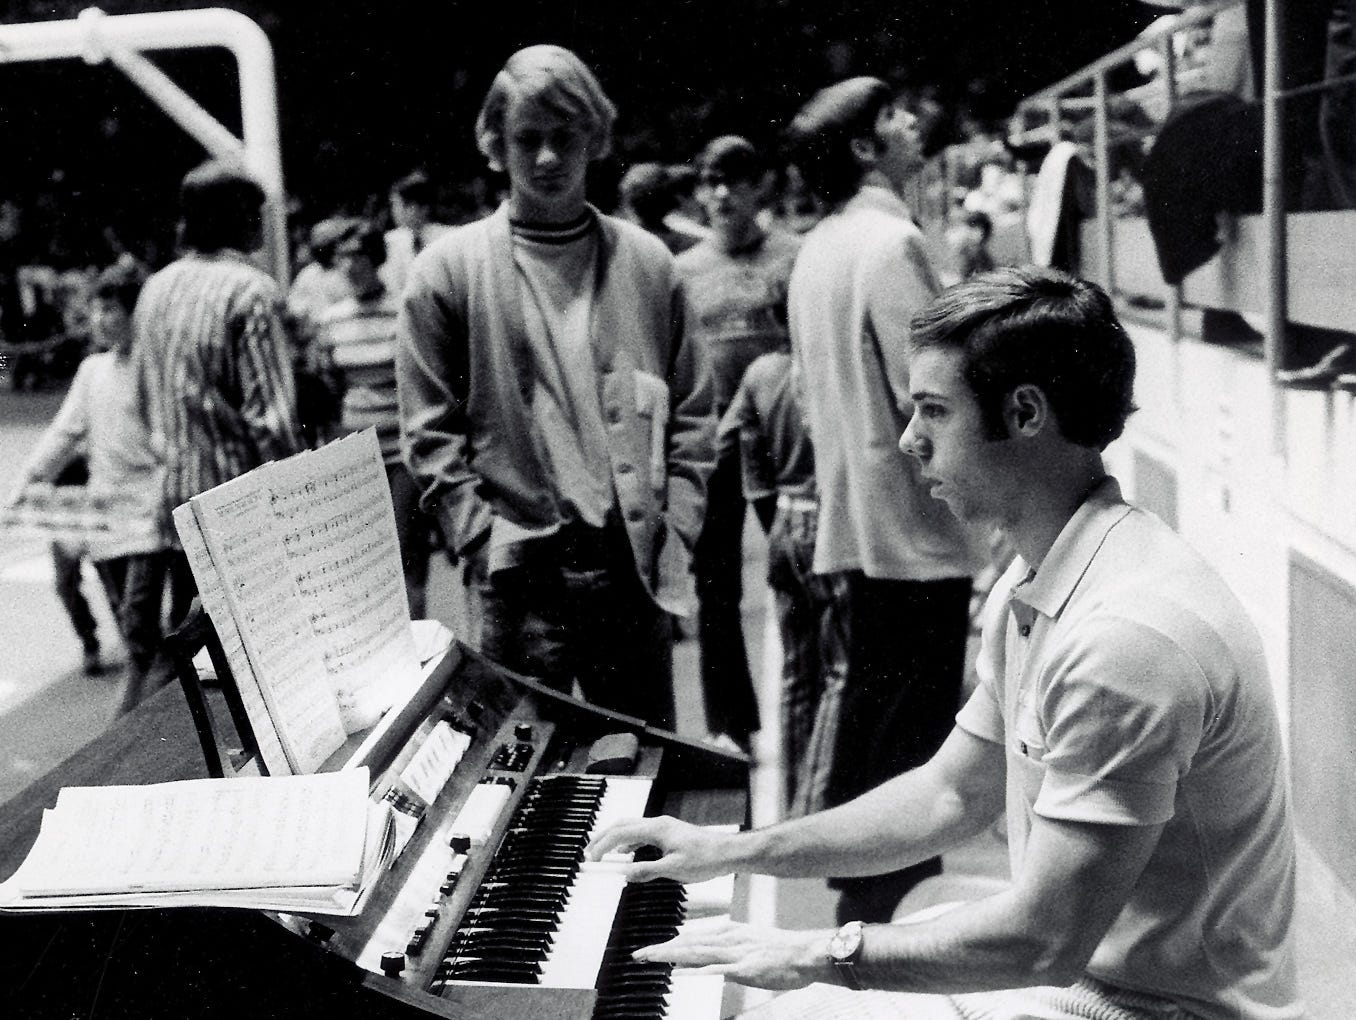 Vol swimmer John Trembley plays the organ before the Tennessee - California Irvine basketball game Dec. 1, 1971 at Stokely Athletic Center.